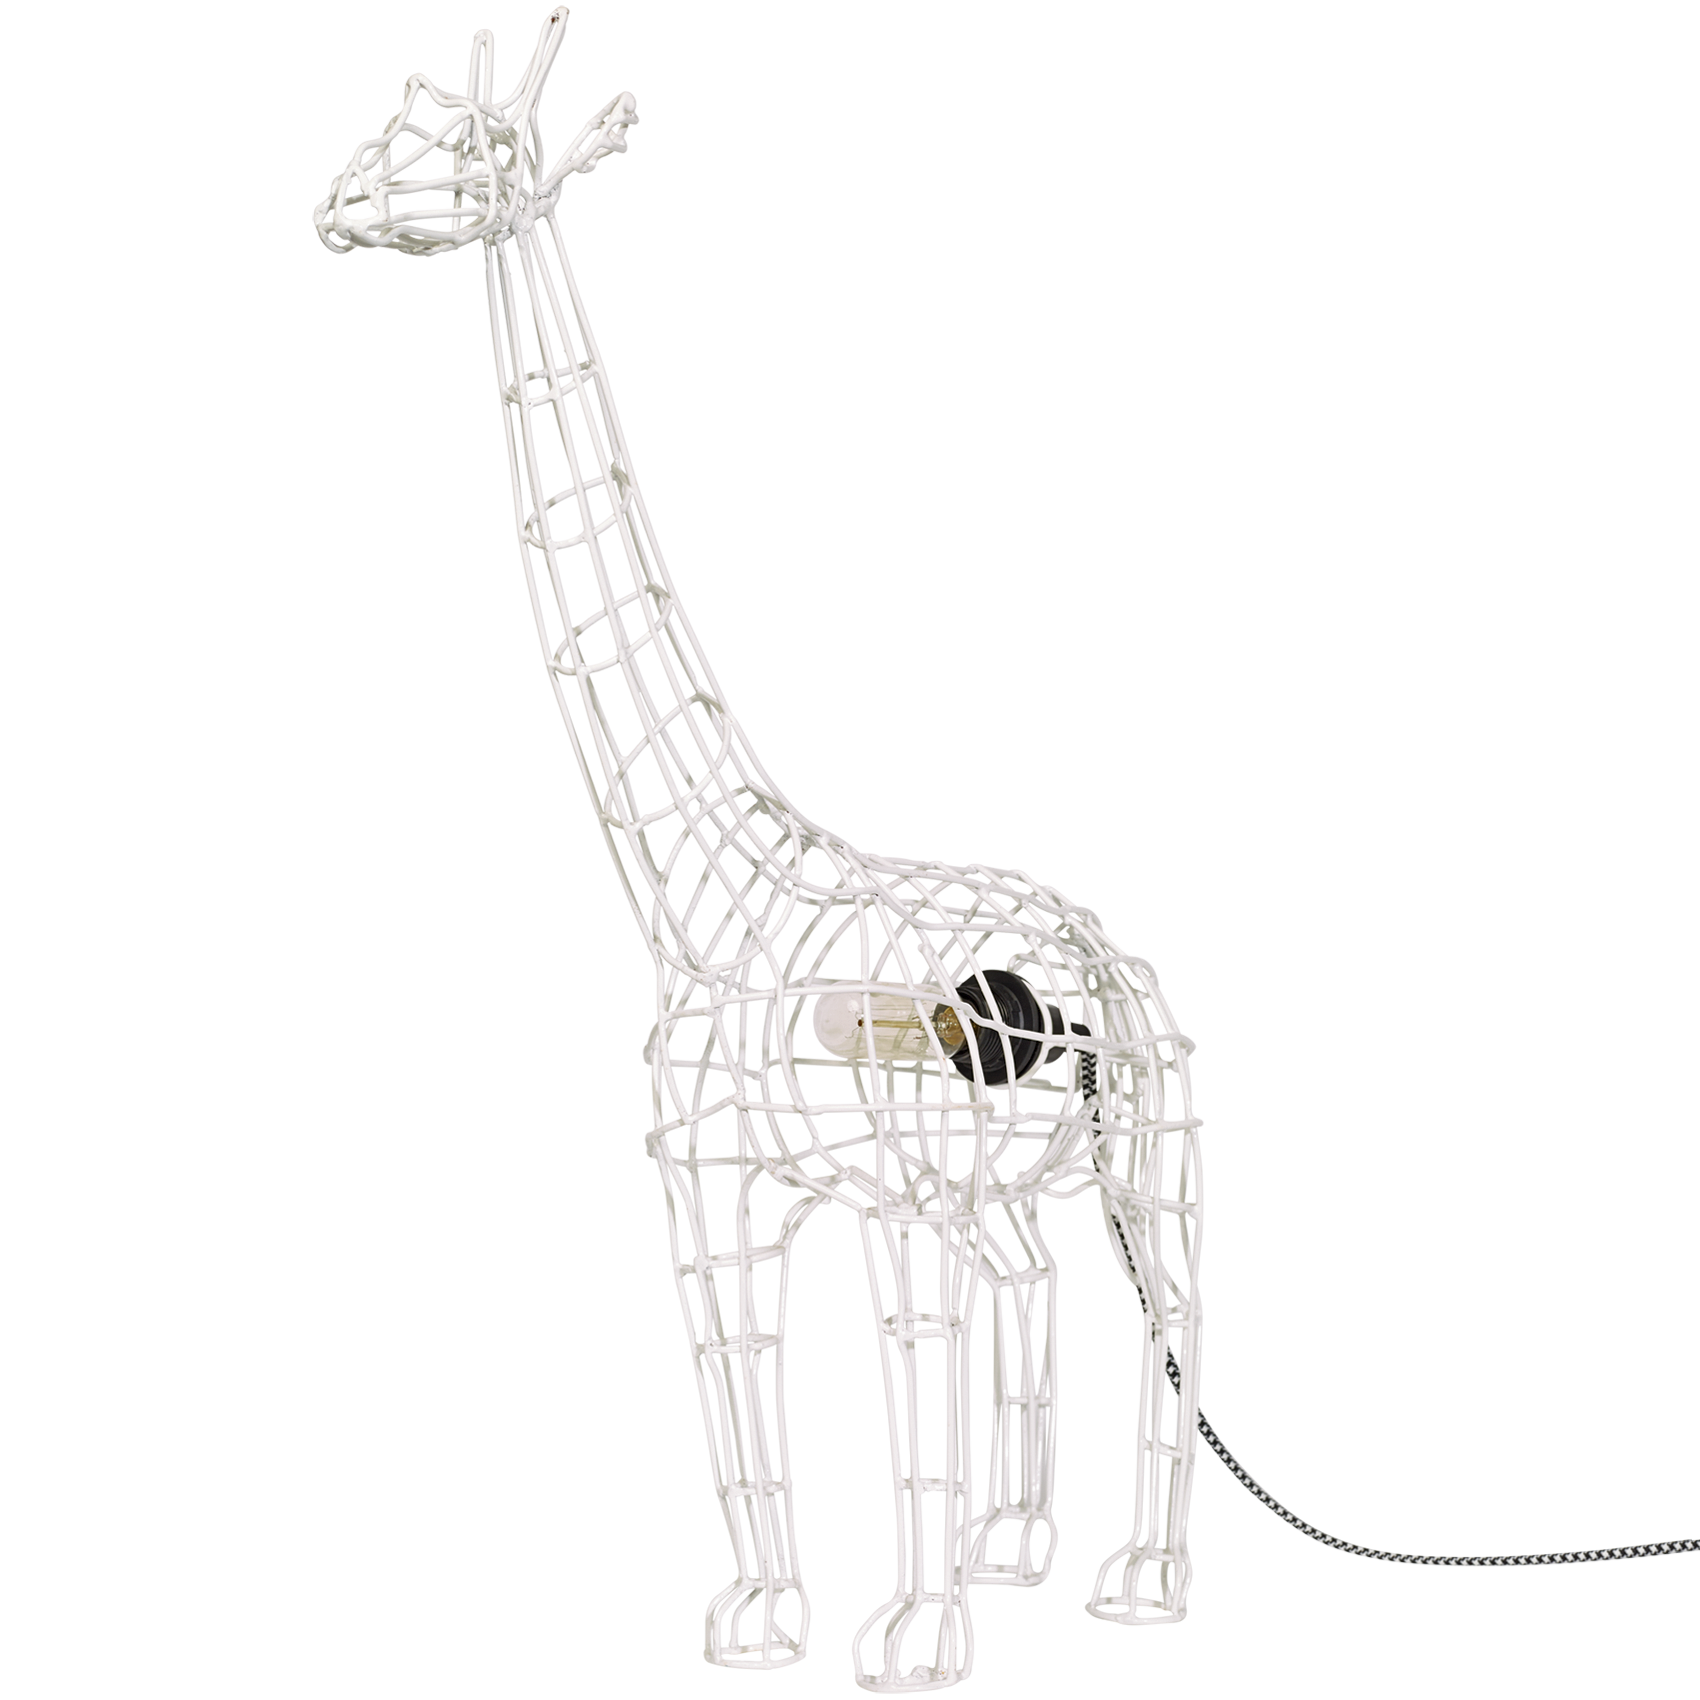 products/giraffe-wire-lamp-home-decor-16615523352676.png